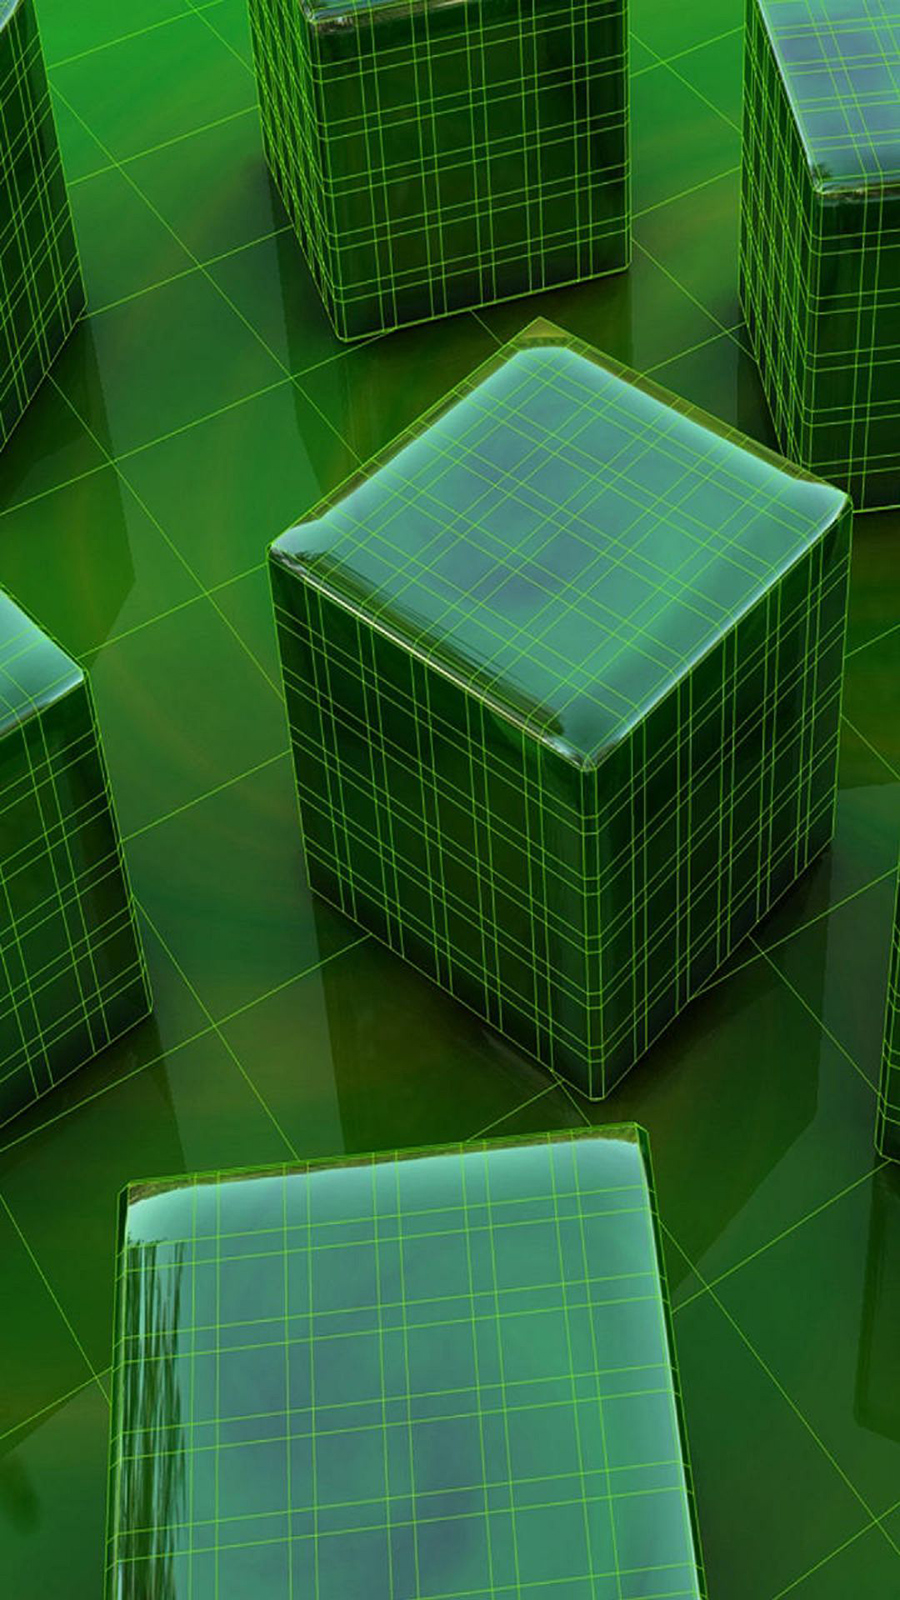 3D Green Boxes CGI Android Wallpaper